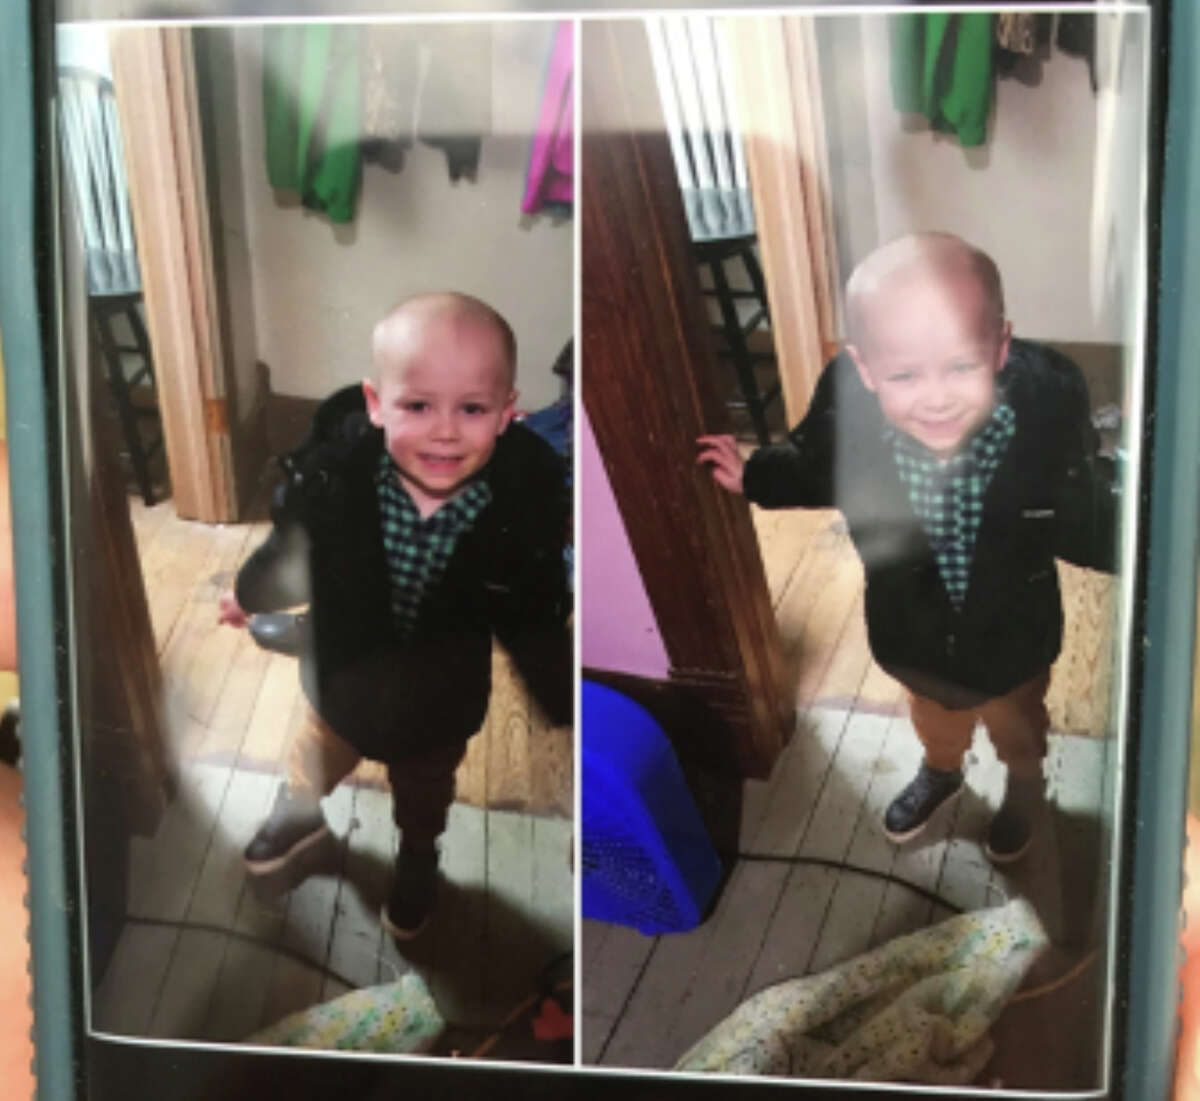 Police are trying to locate 4-year-old Elias Joseph Krajenke, who was last seen July 4.